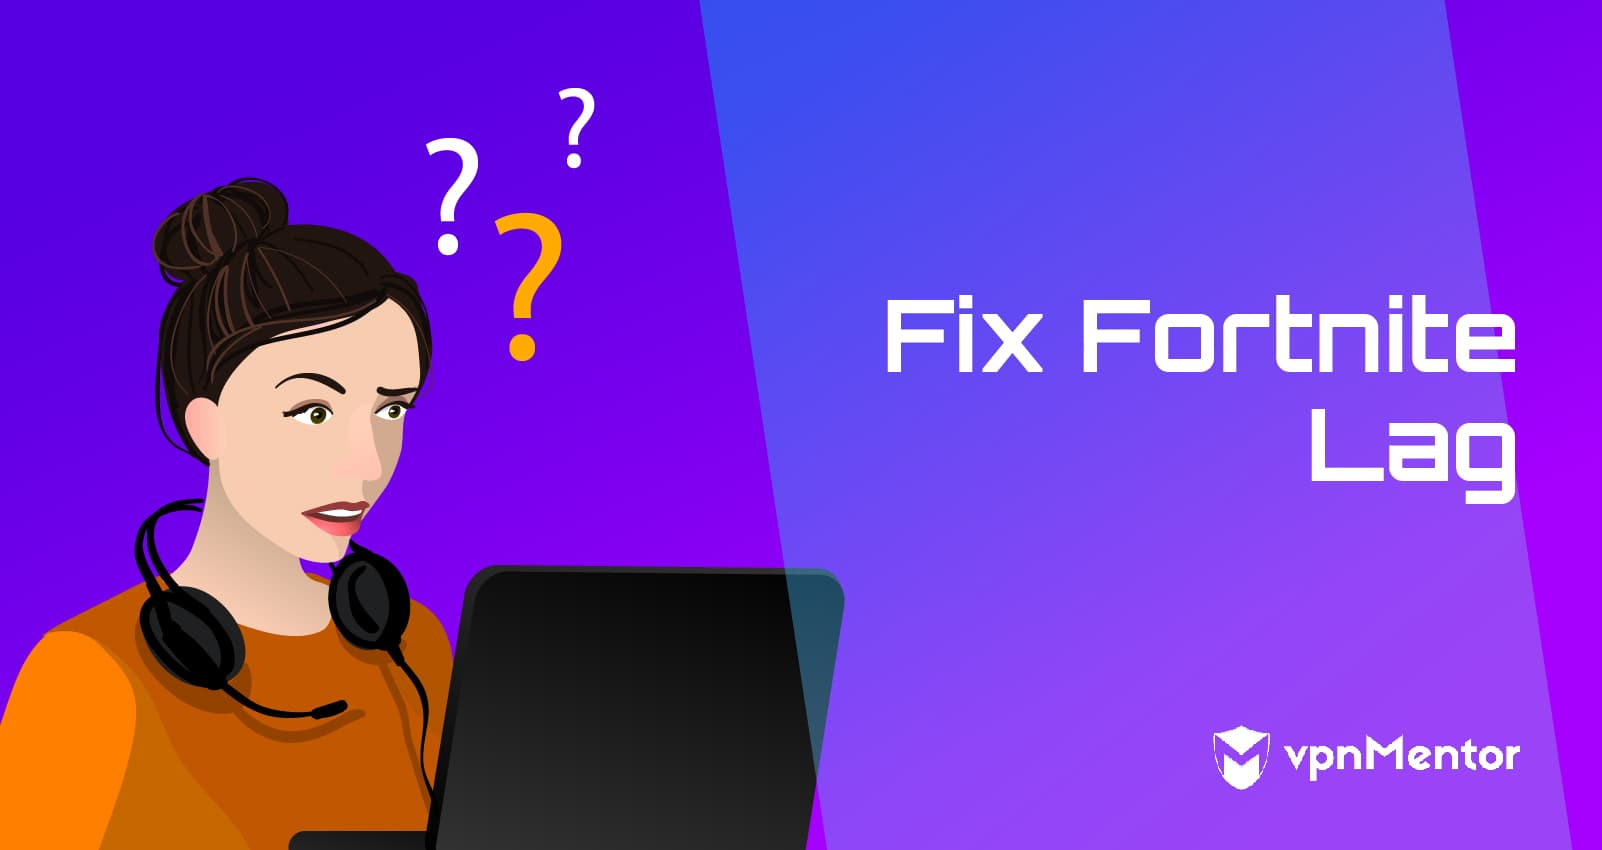 How Do I Improve My Ping In Fortnite How To Fix Fortnite Lag Fast Easy Hack For Gamers In 2021